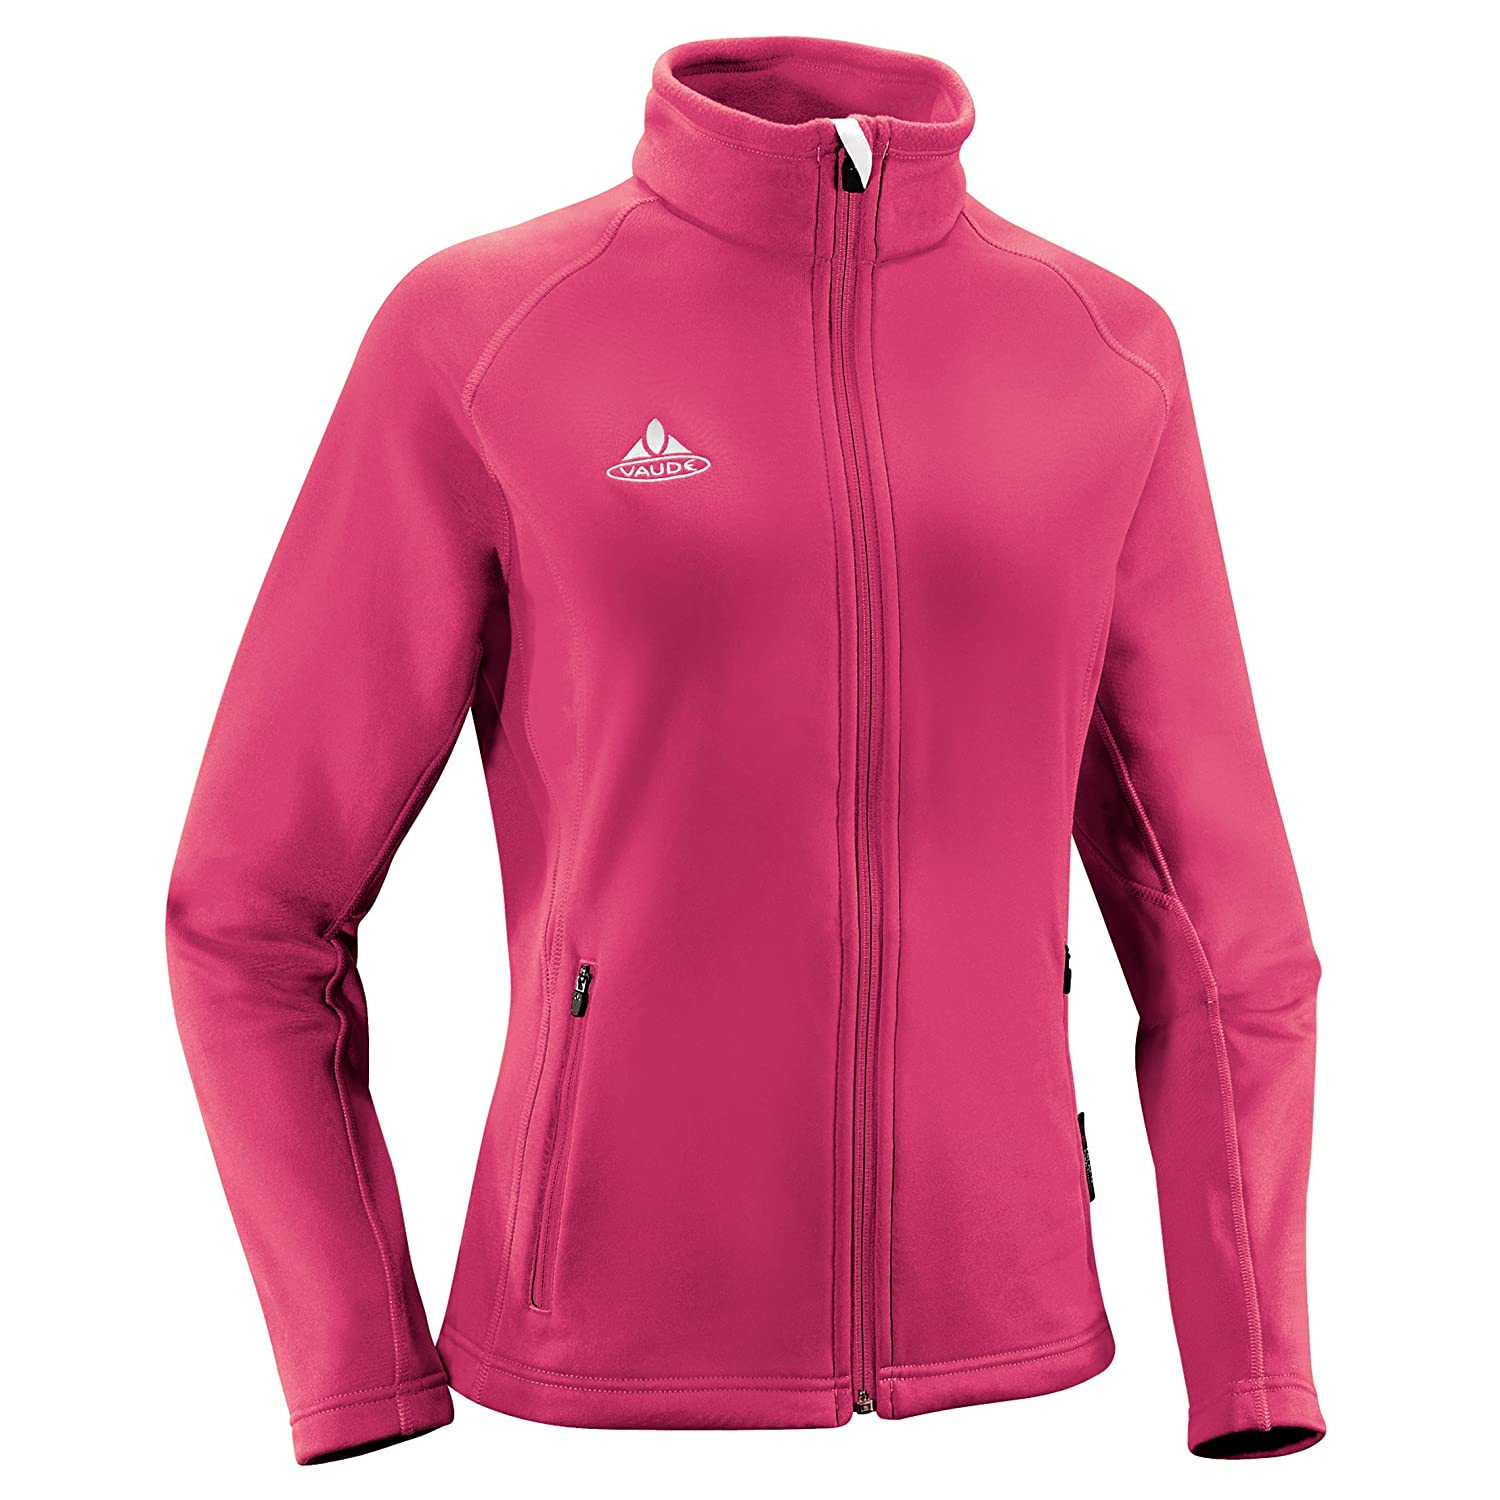 Vaude fleecejacke Women's Shipton Jacket raspberry